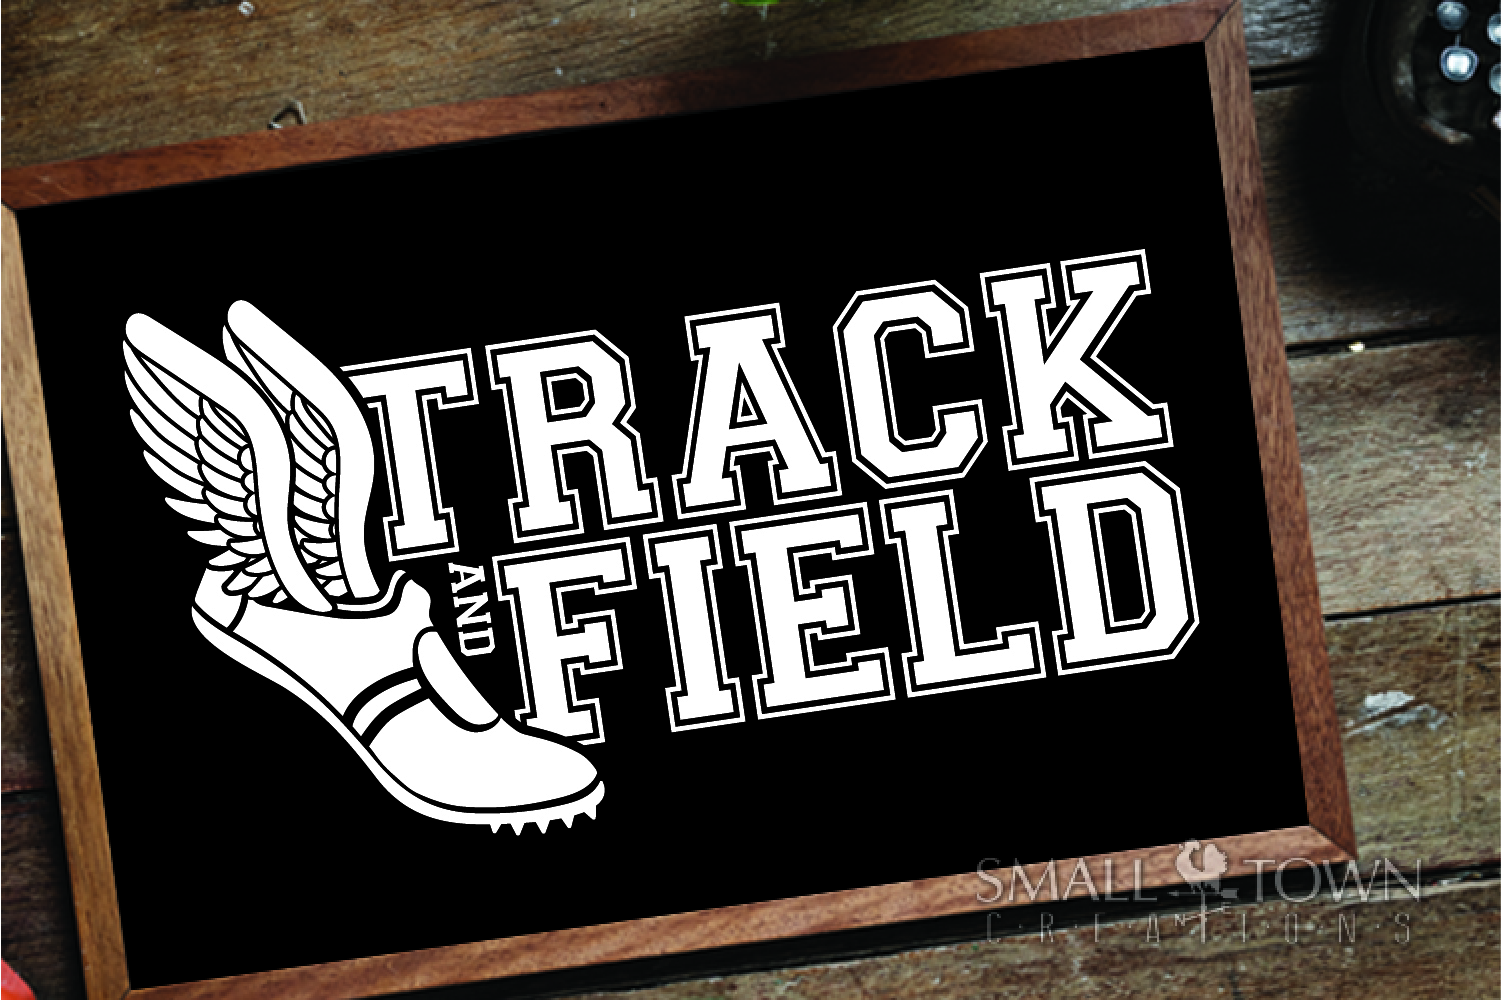 Track and Field, Team sport, Track logo, PRINT, CUT, DESIGN example image 6